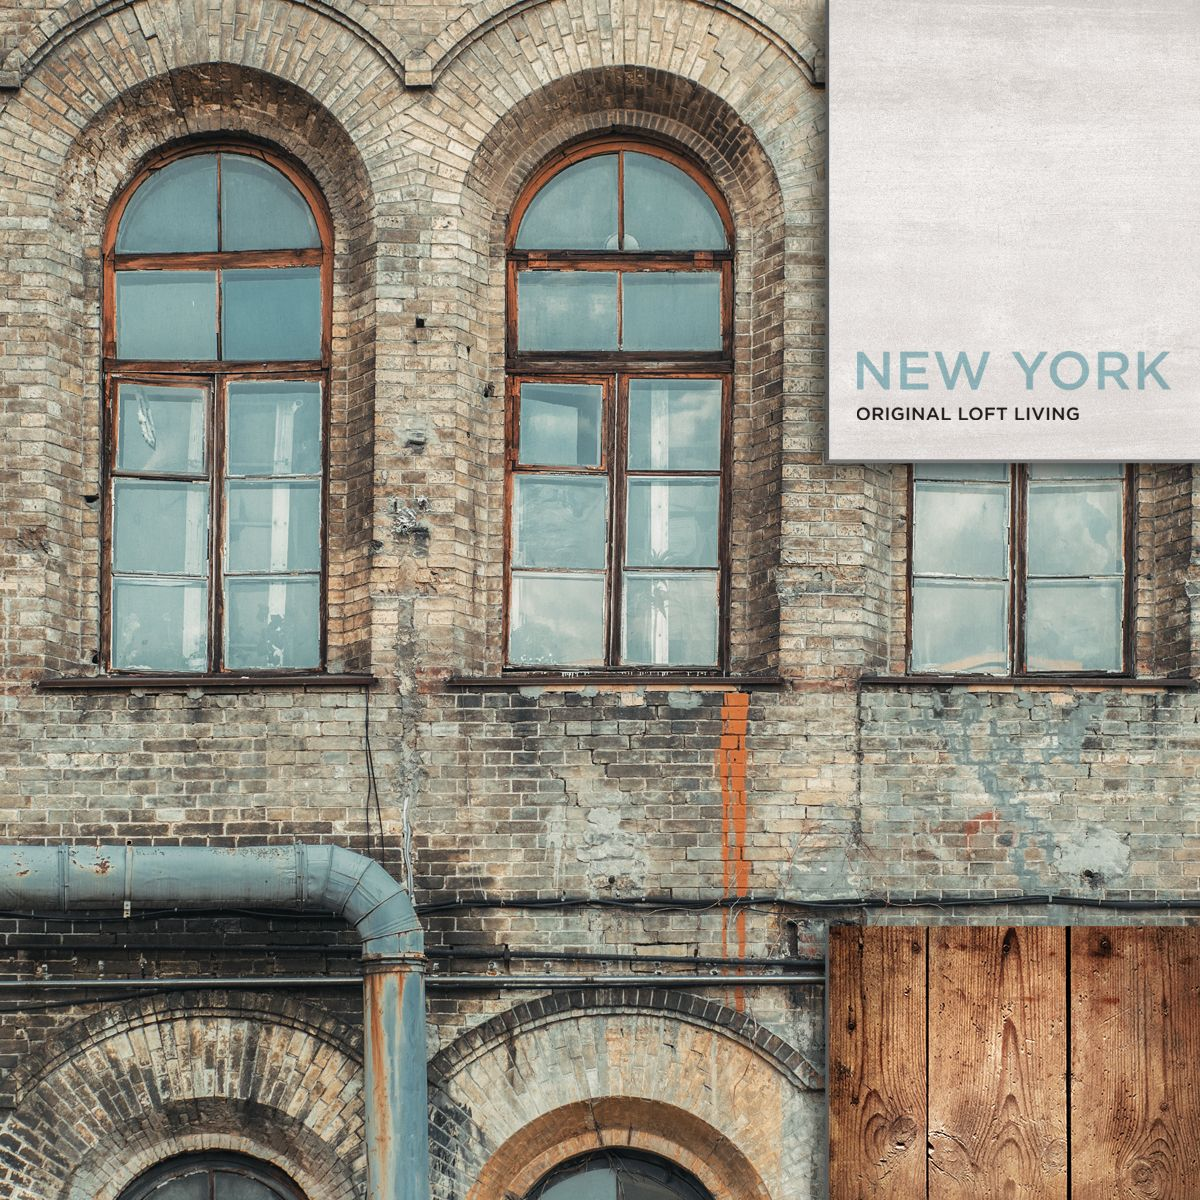 The Original Style Of The New York Loft Apartments Is At